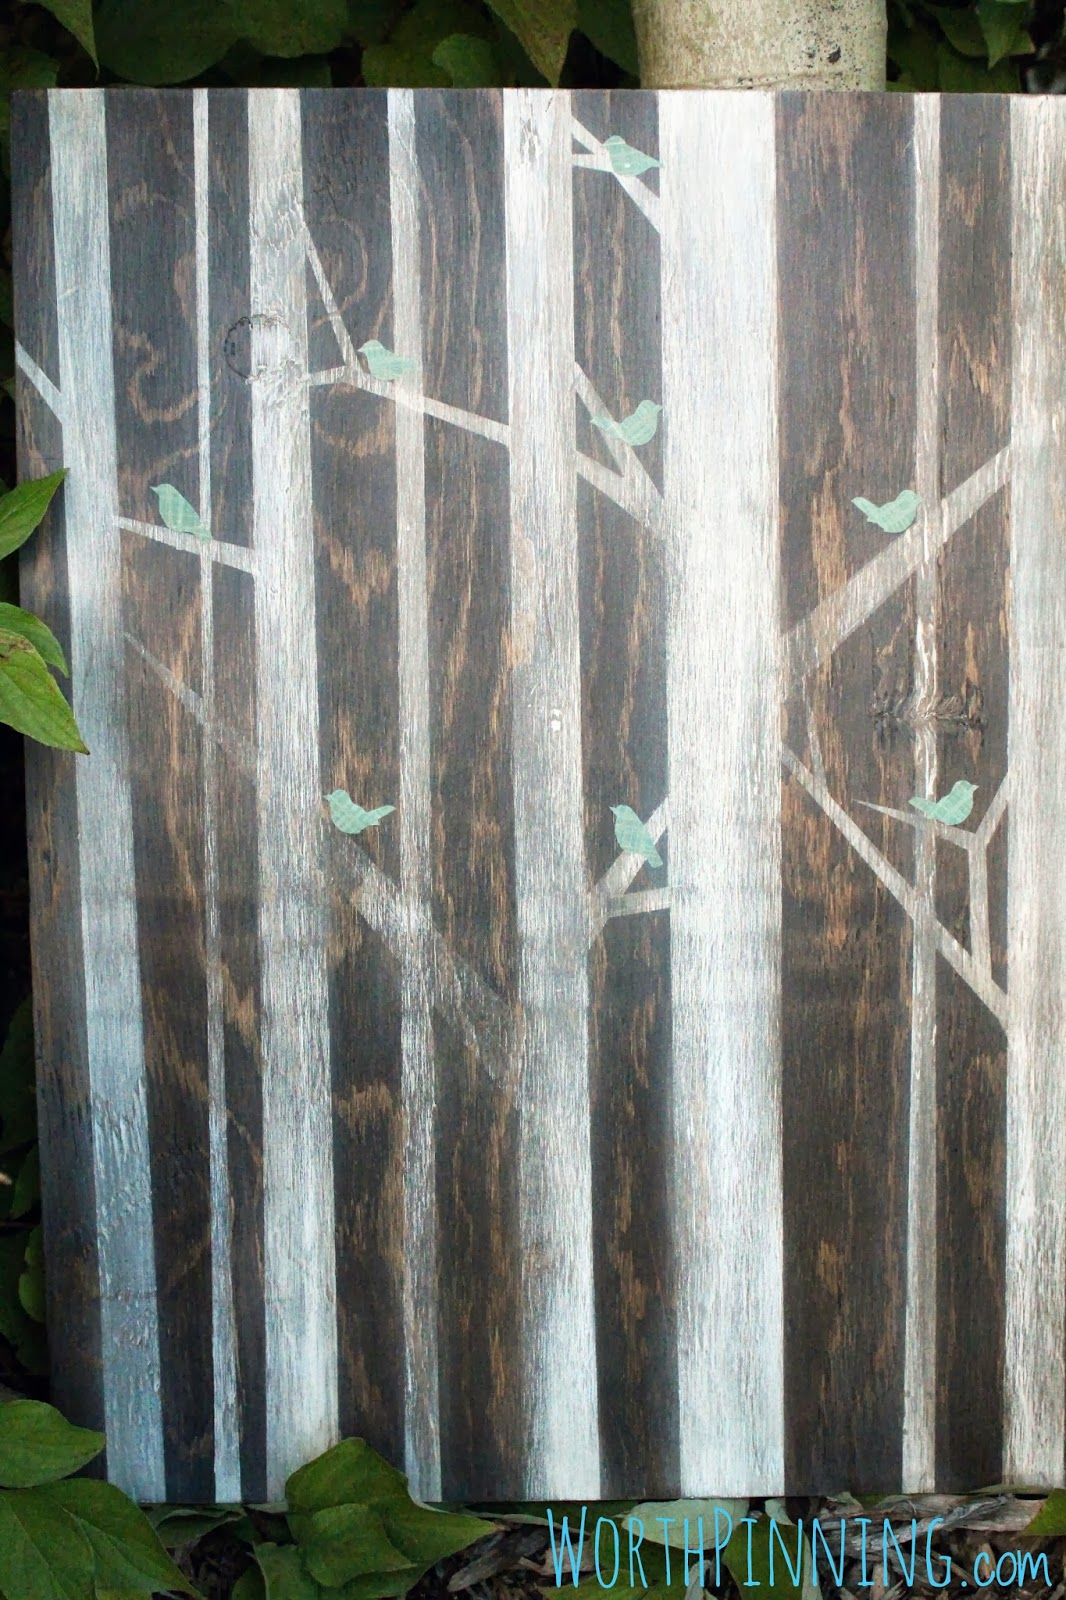 Art Painted On Wood Worth Pinning Birds And Trees Painting On Stained Wood